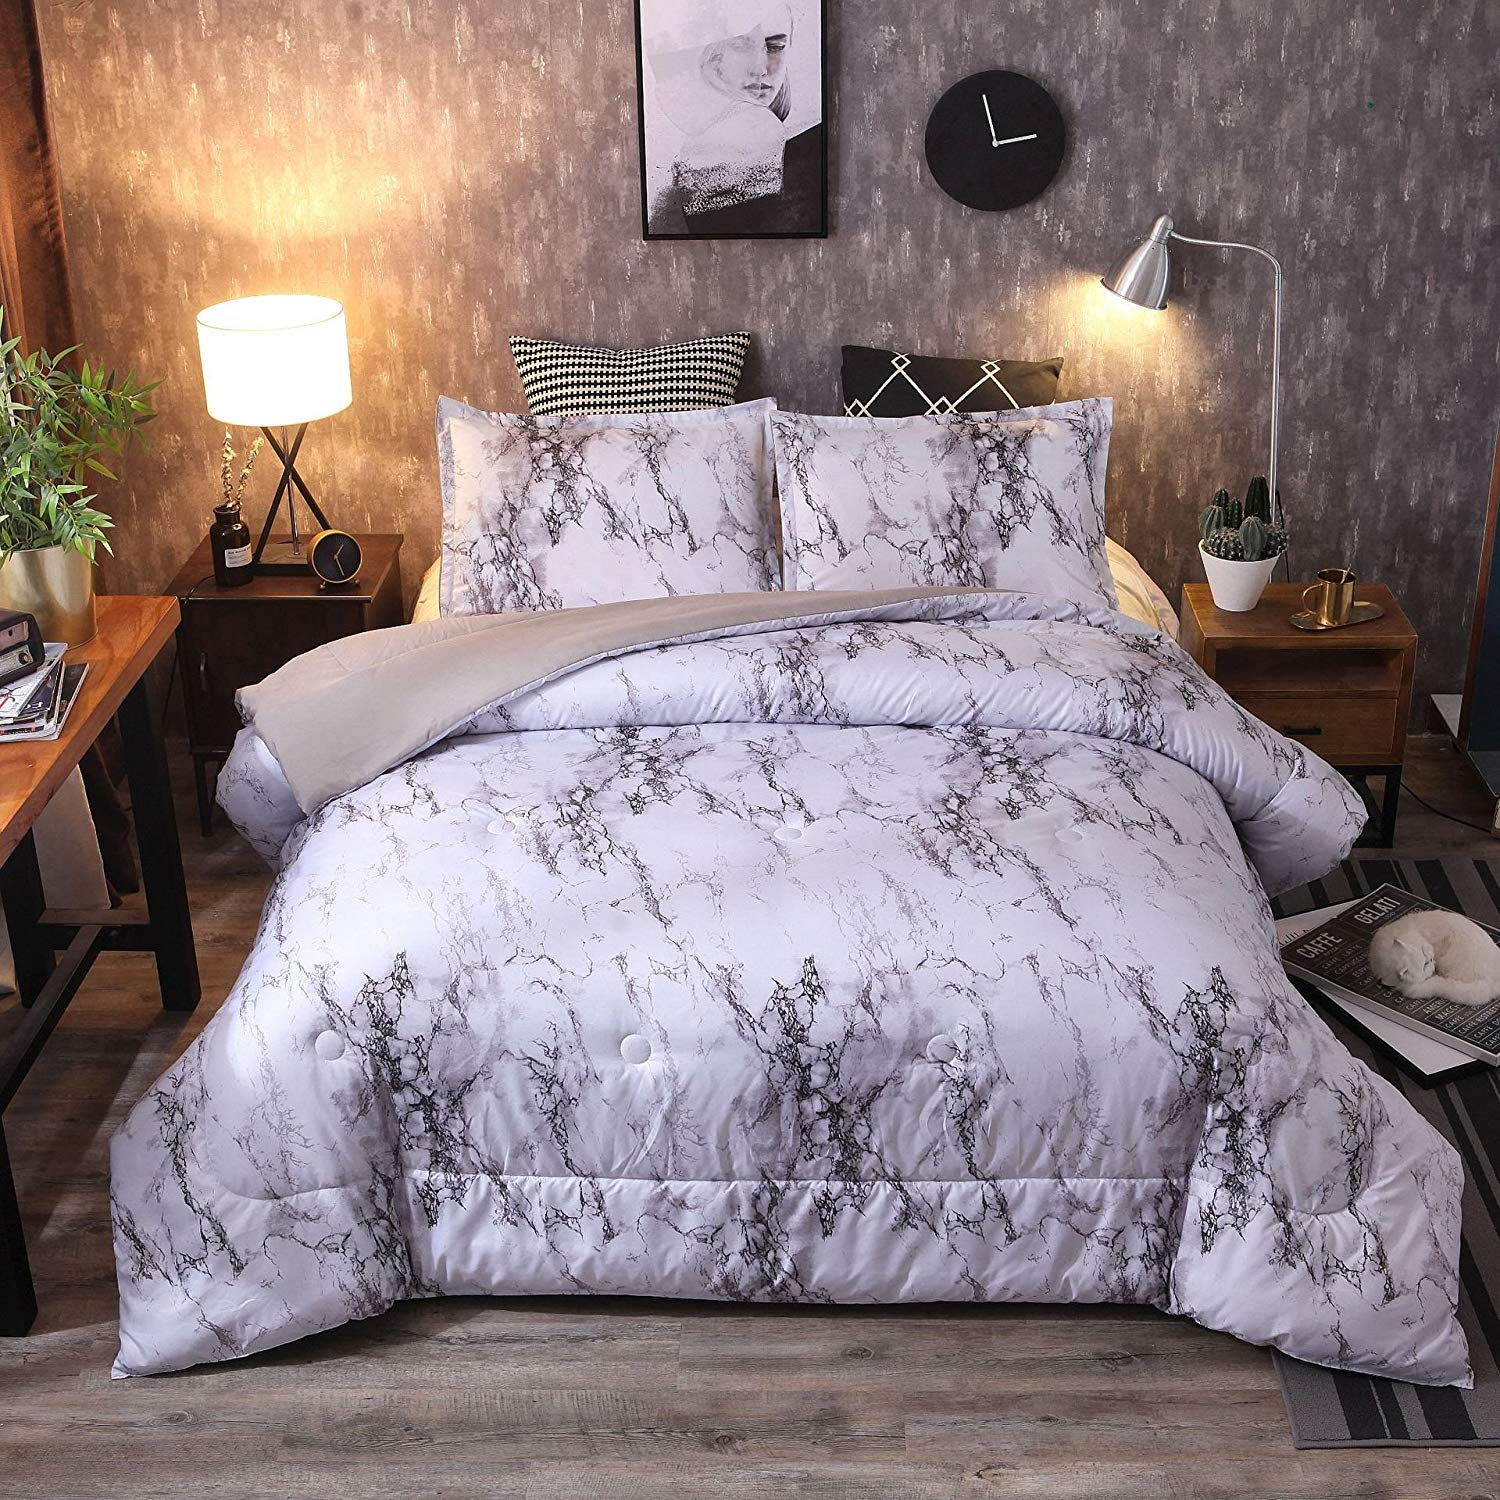 Cheap Tropical Comforter Sets Find Tropical Comforter Sets Deals On Line At Alibaba Com